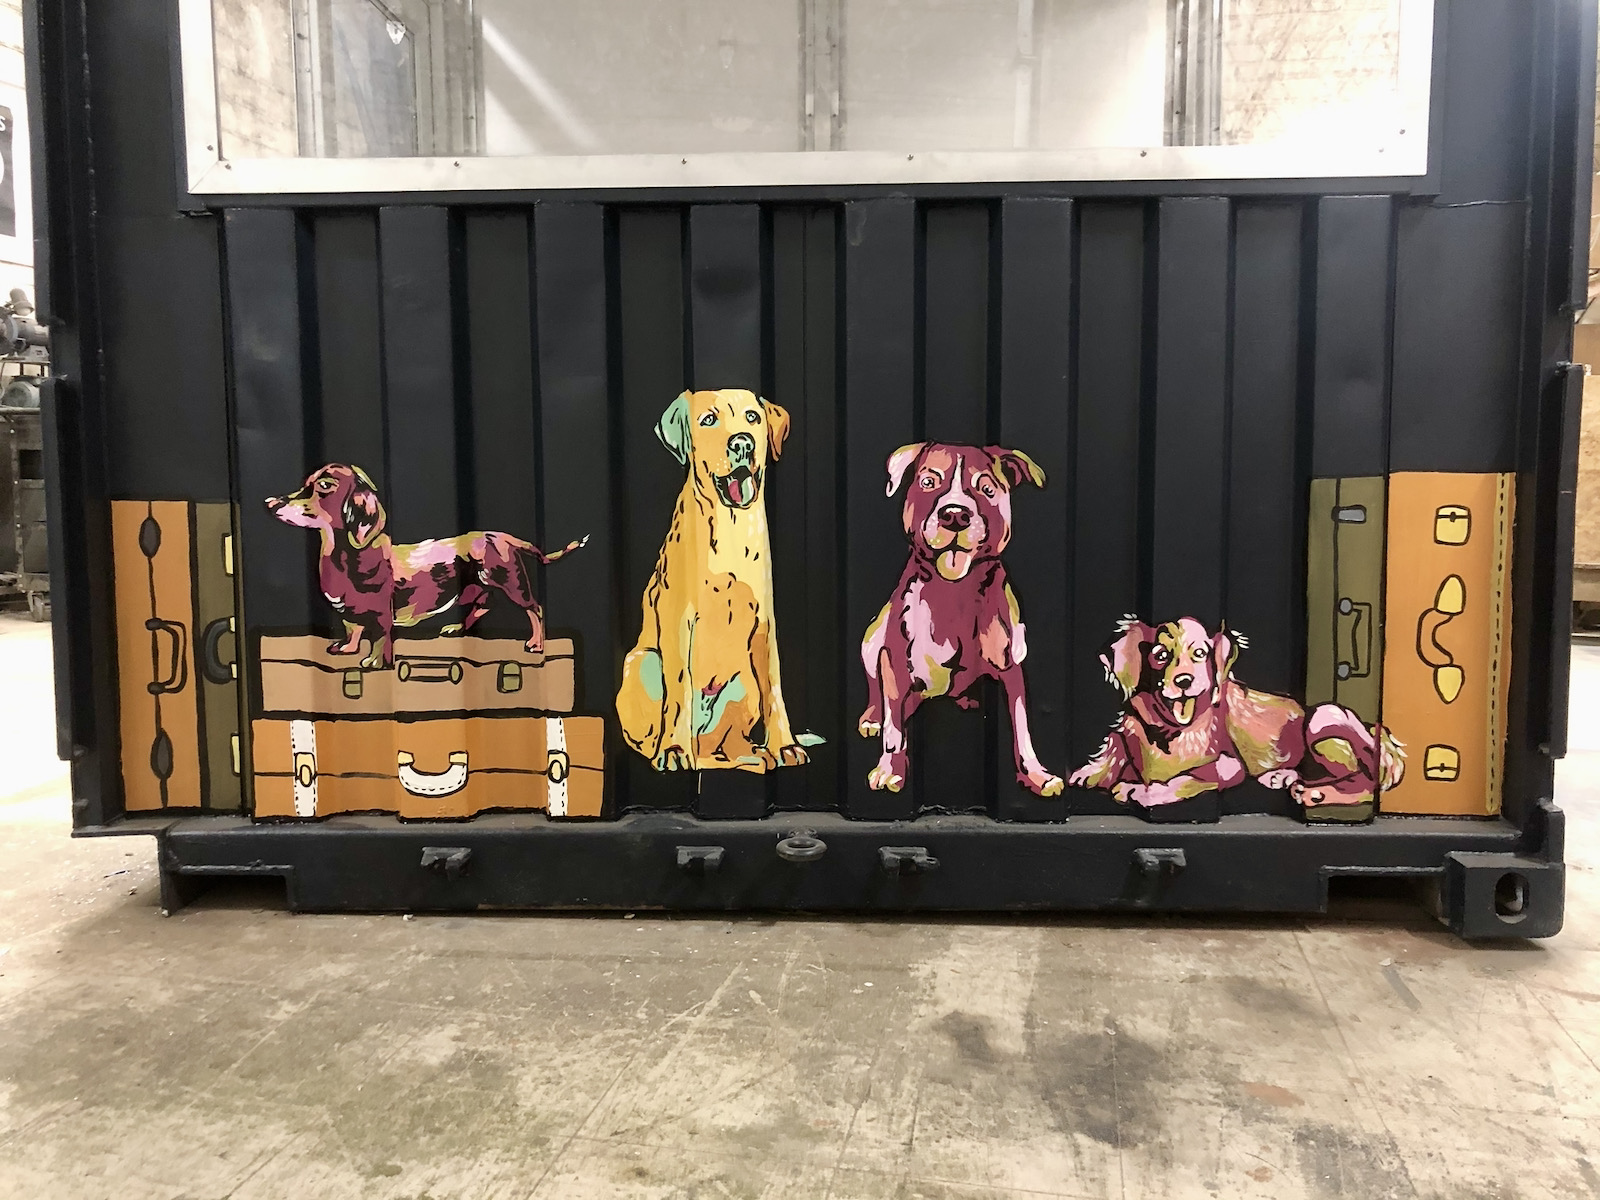 Dogs, luggage and beer painted on dining car